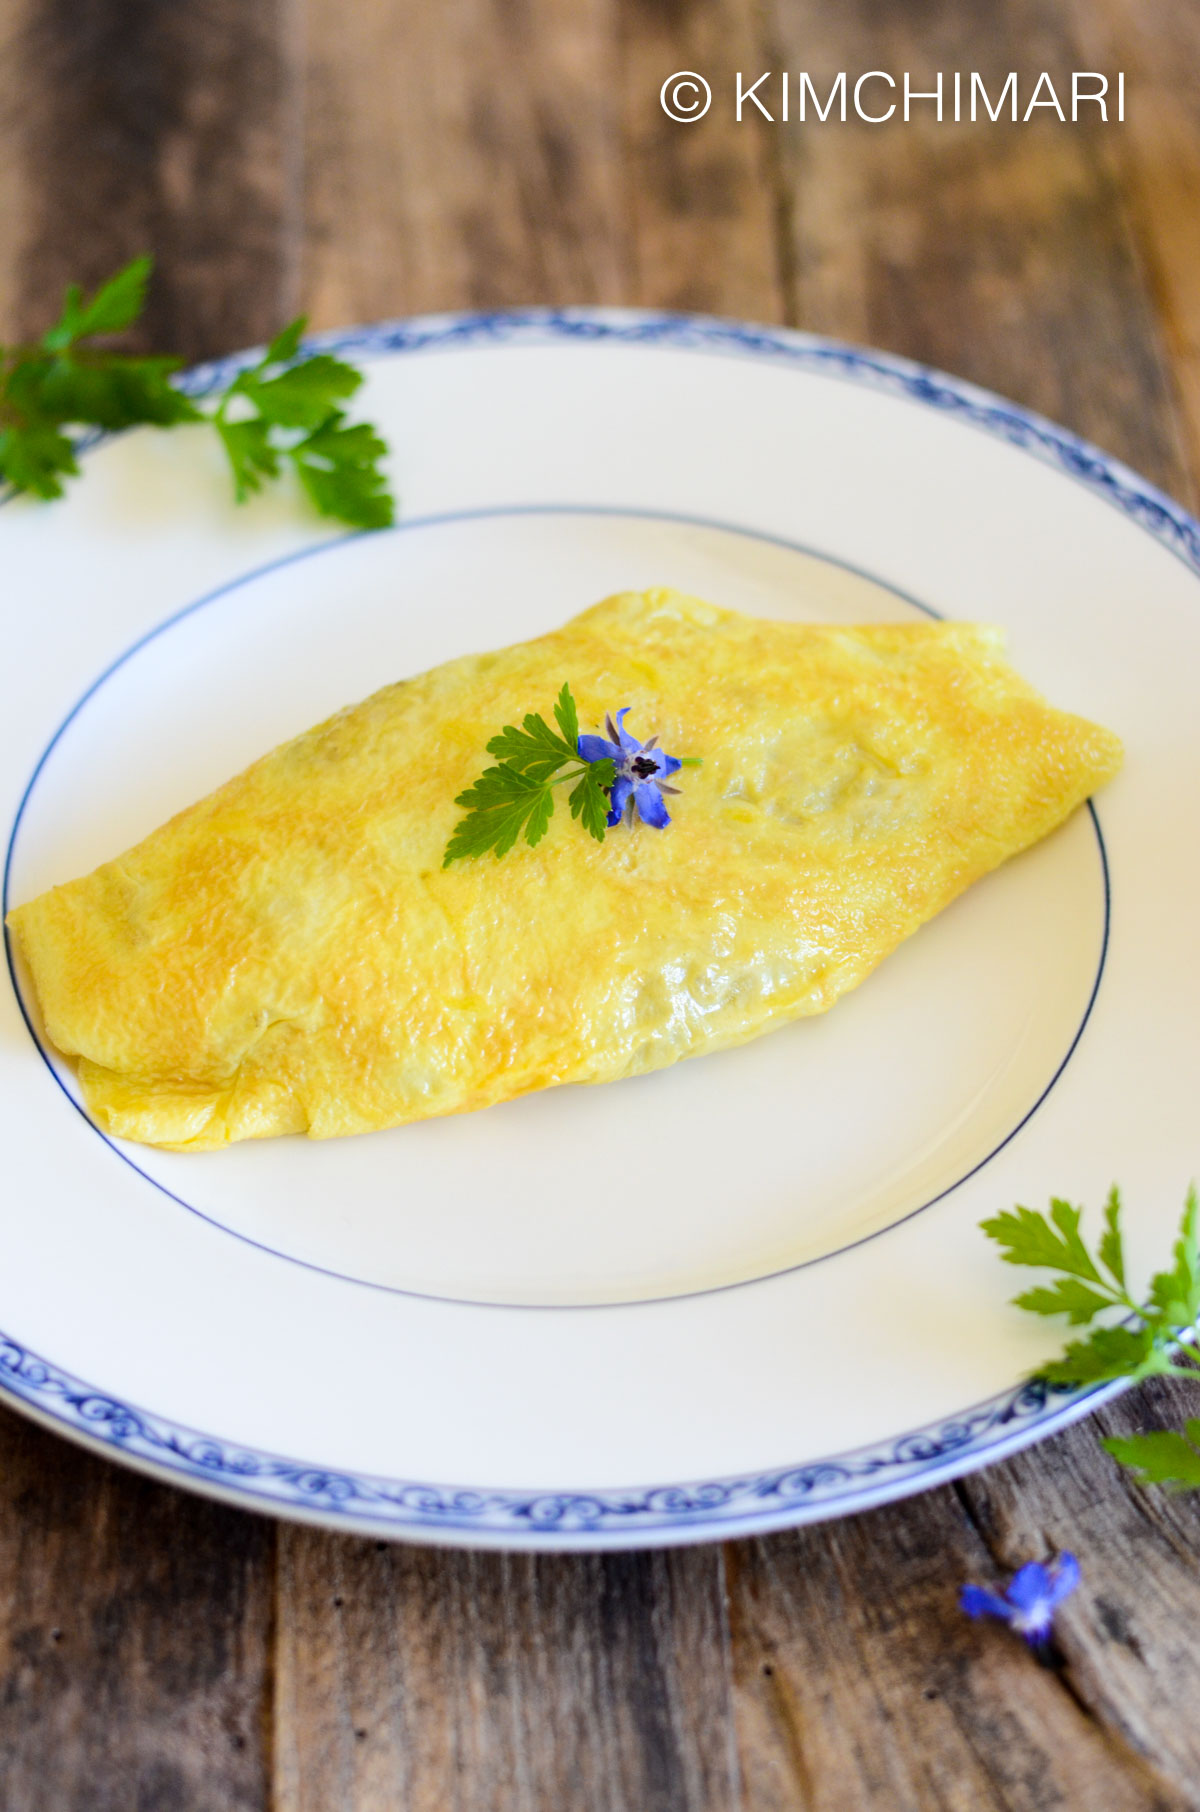 omurice served on white plate garnished with parsely and boroage blossoms